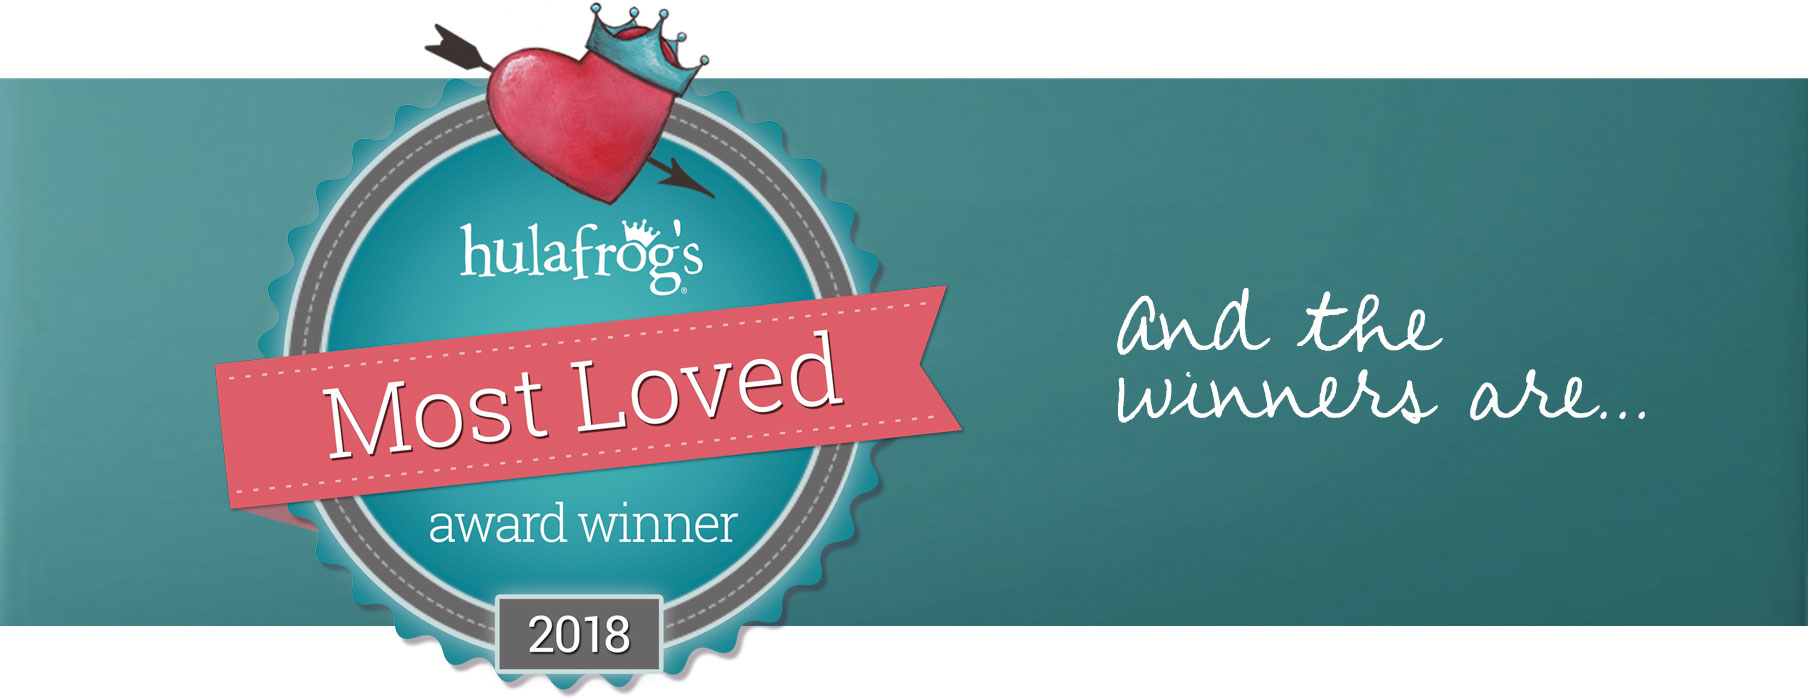 Hulafrogs Most Loved Awards 2018. And the winners are...